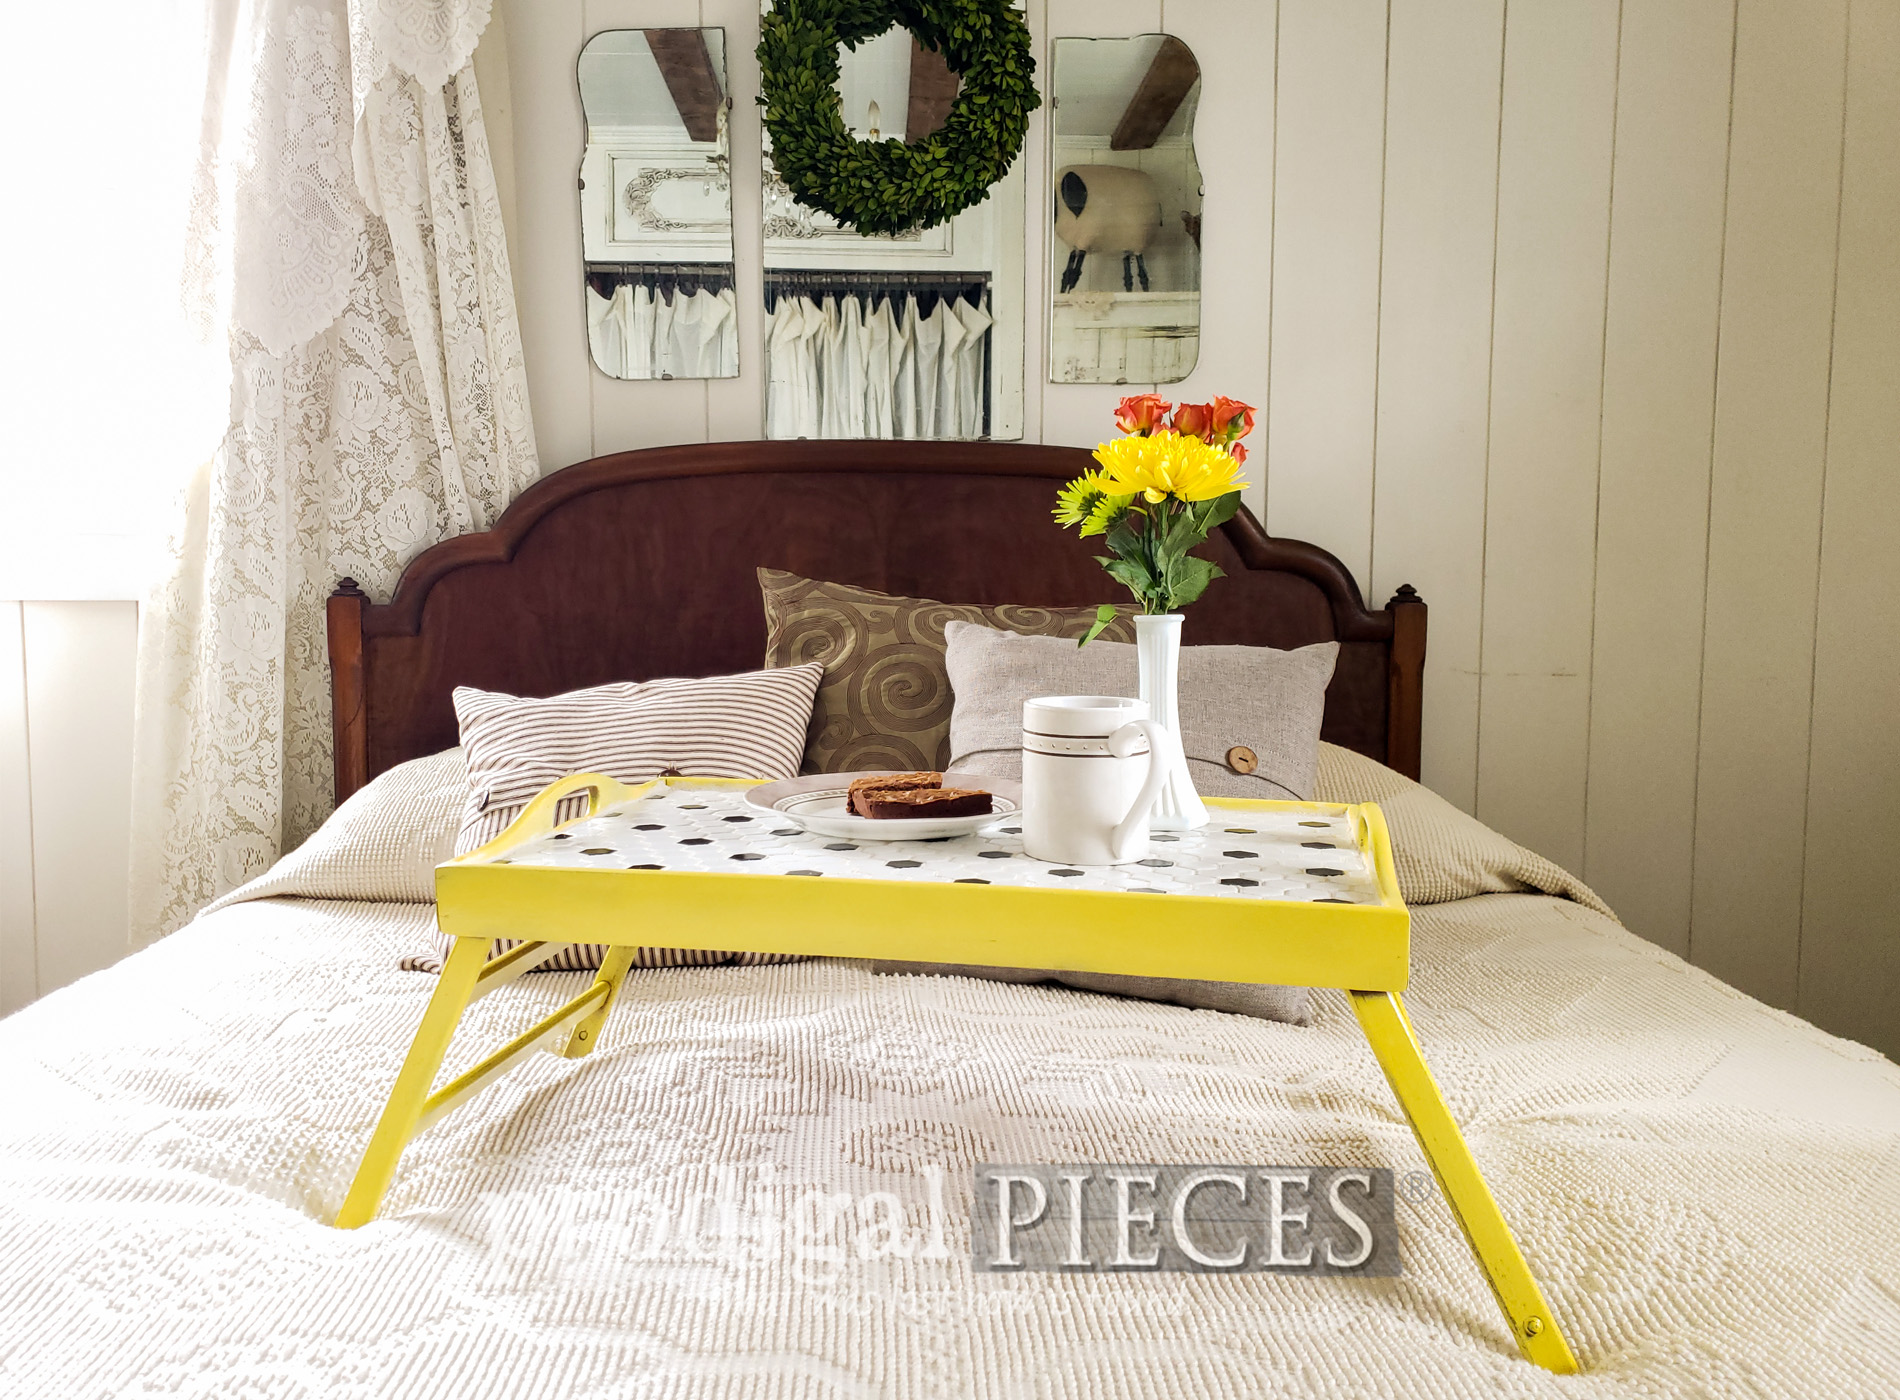 Featured DIY Tiled Tray by Larissa of Prodigal Pieces | prodigalpieces.com #prodigalpieces #diy #home #homedecor